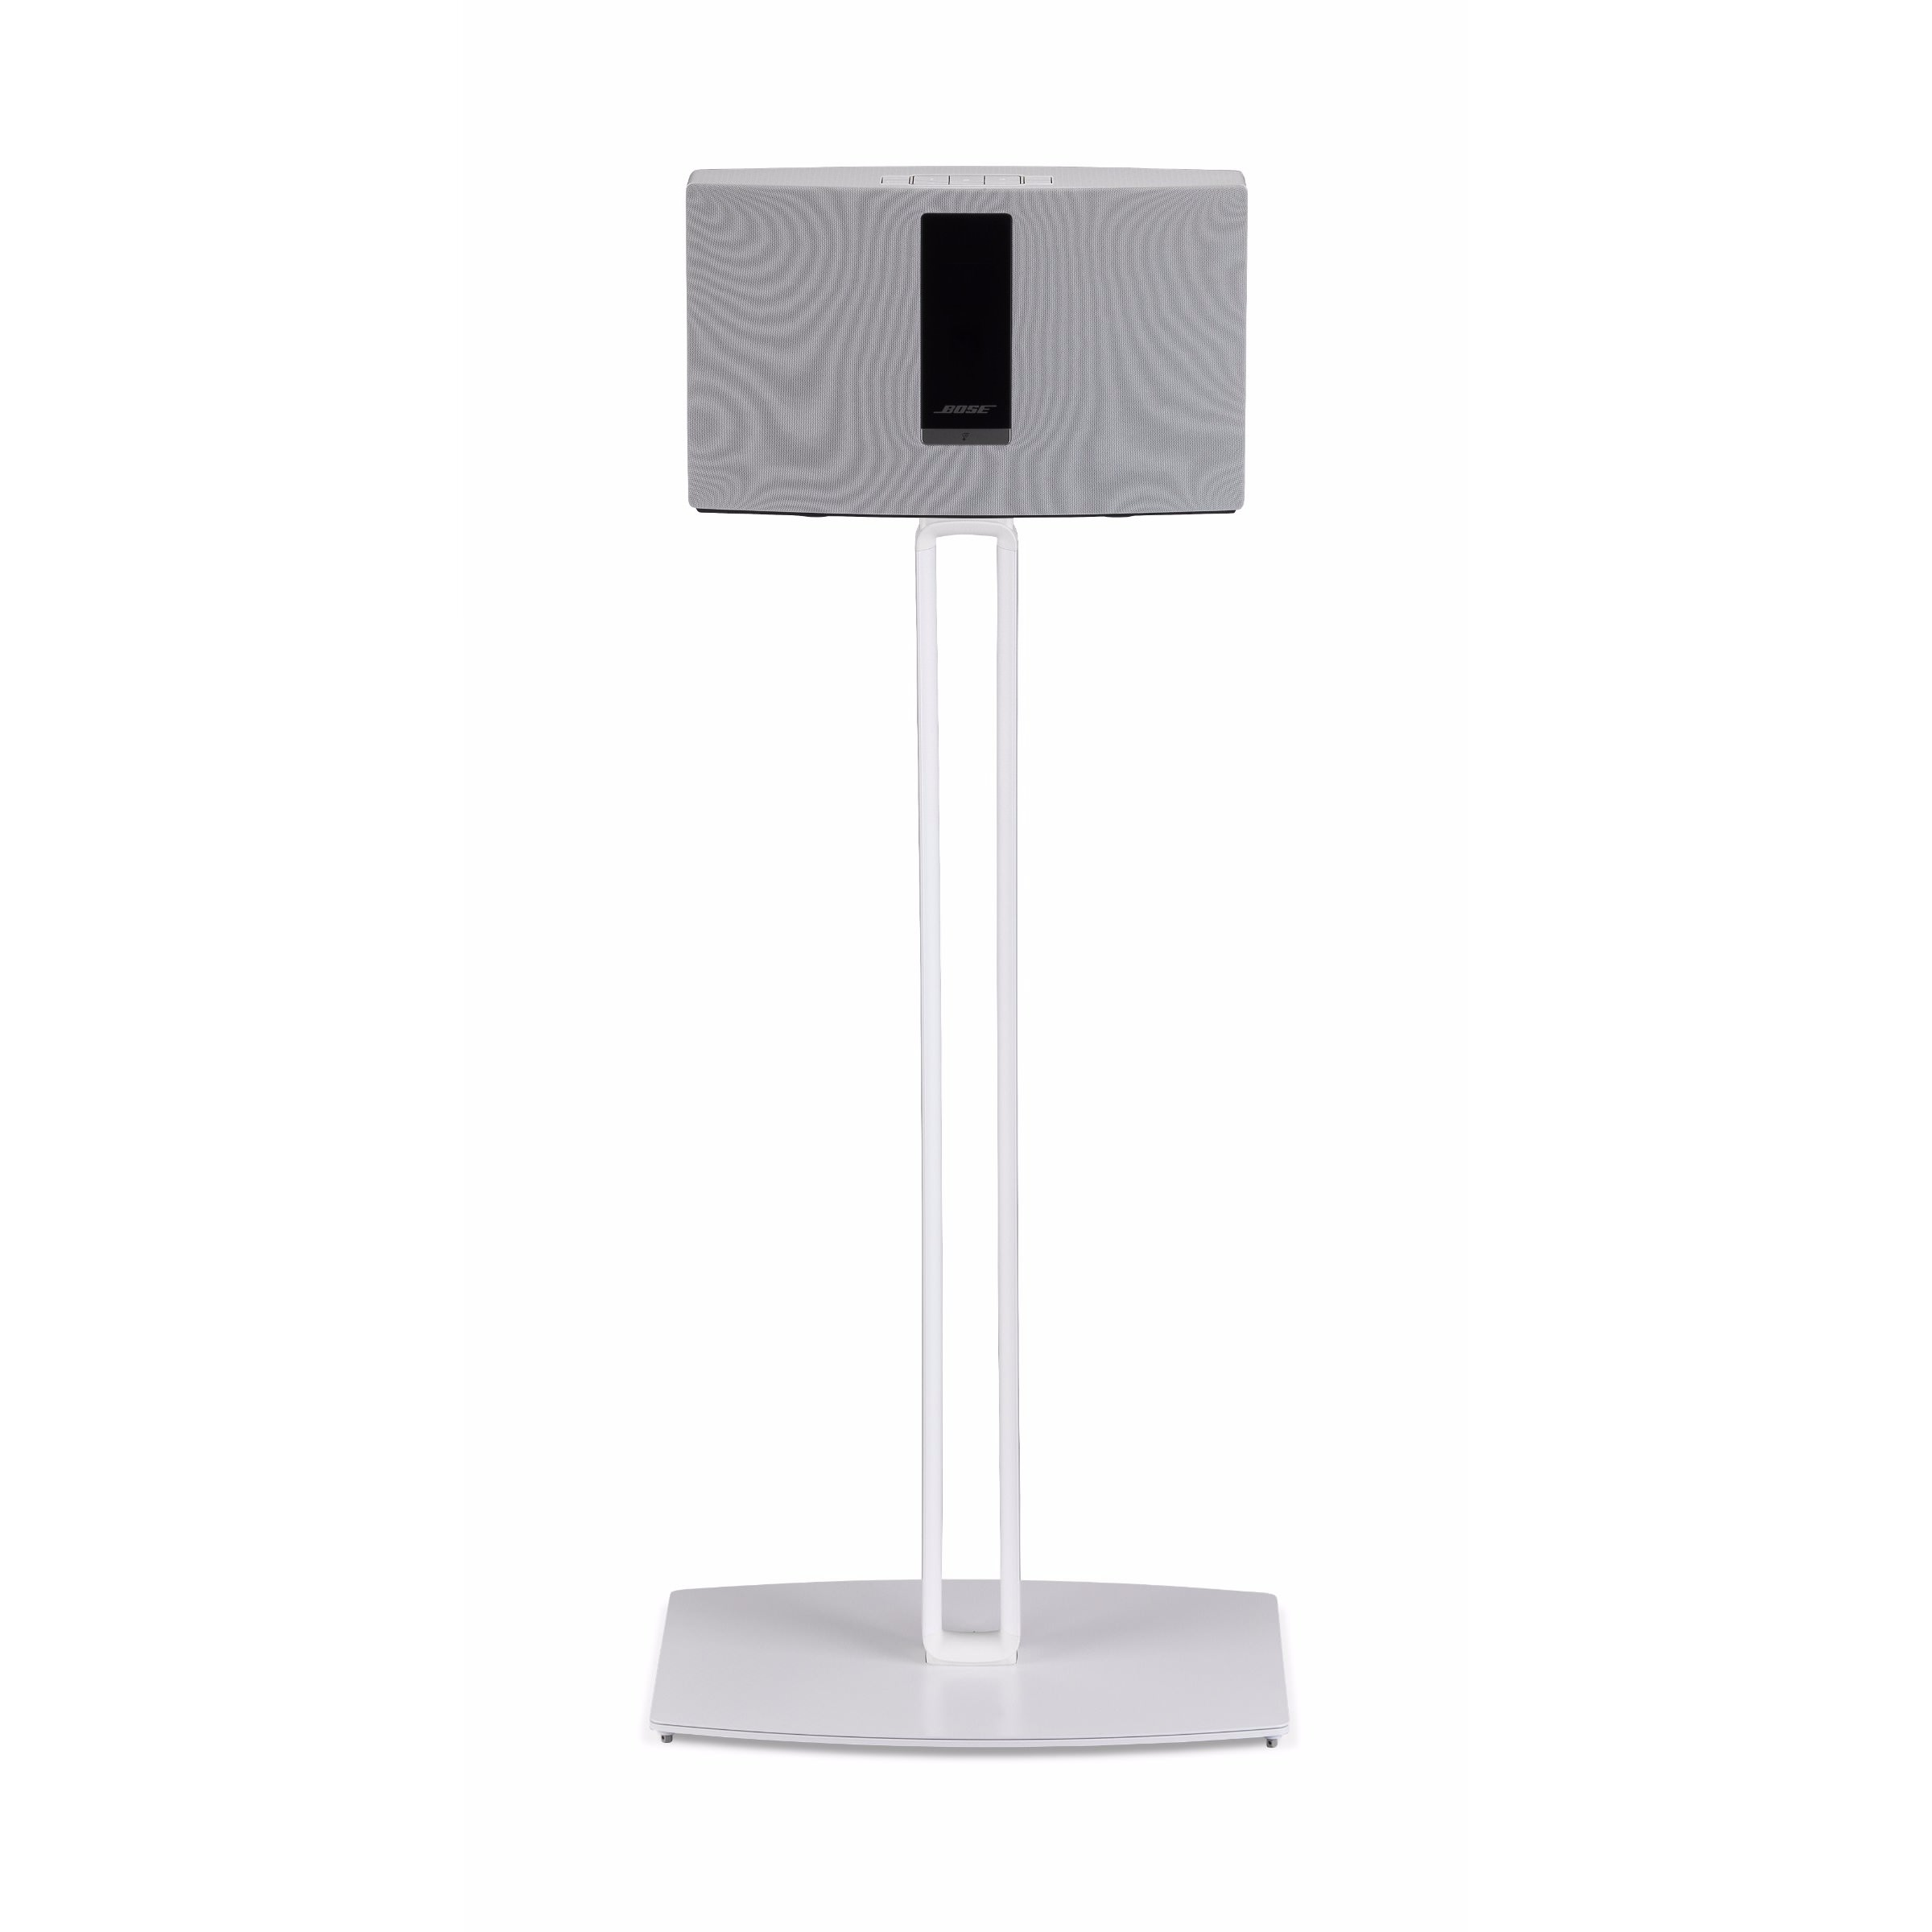 Bose SoundTouch 20 standaard wit 8